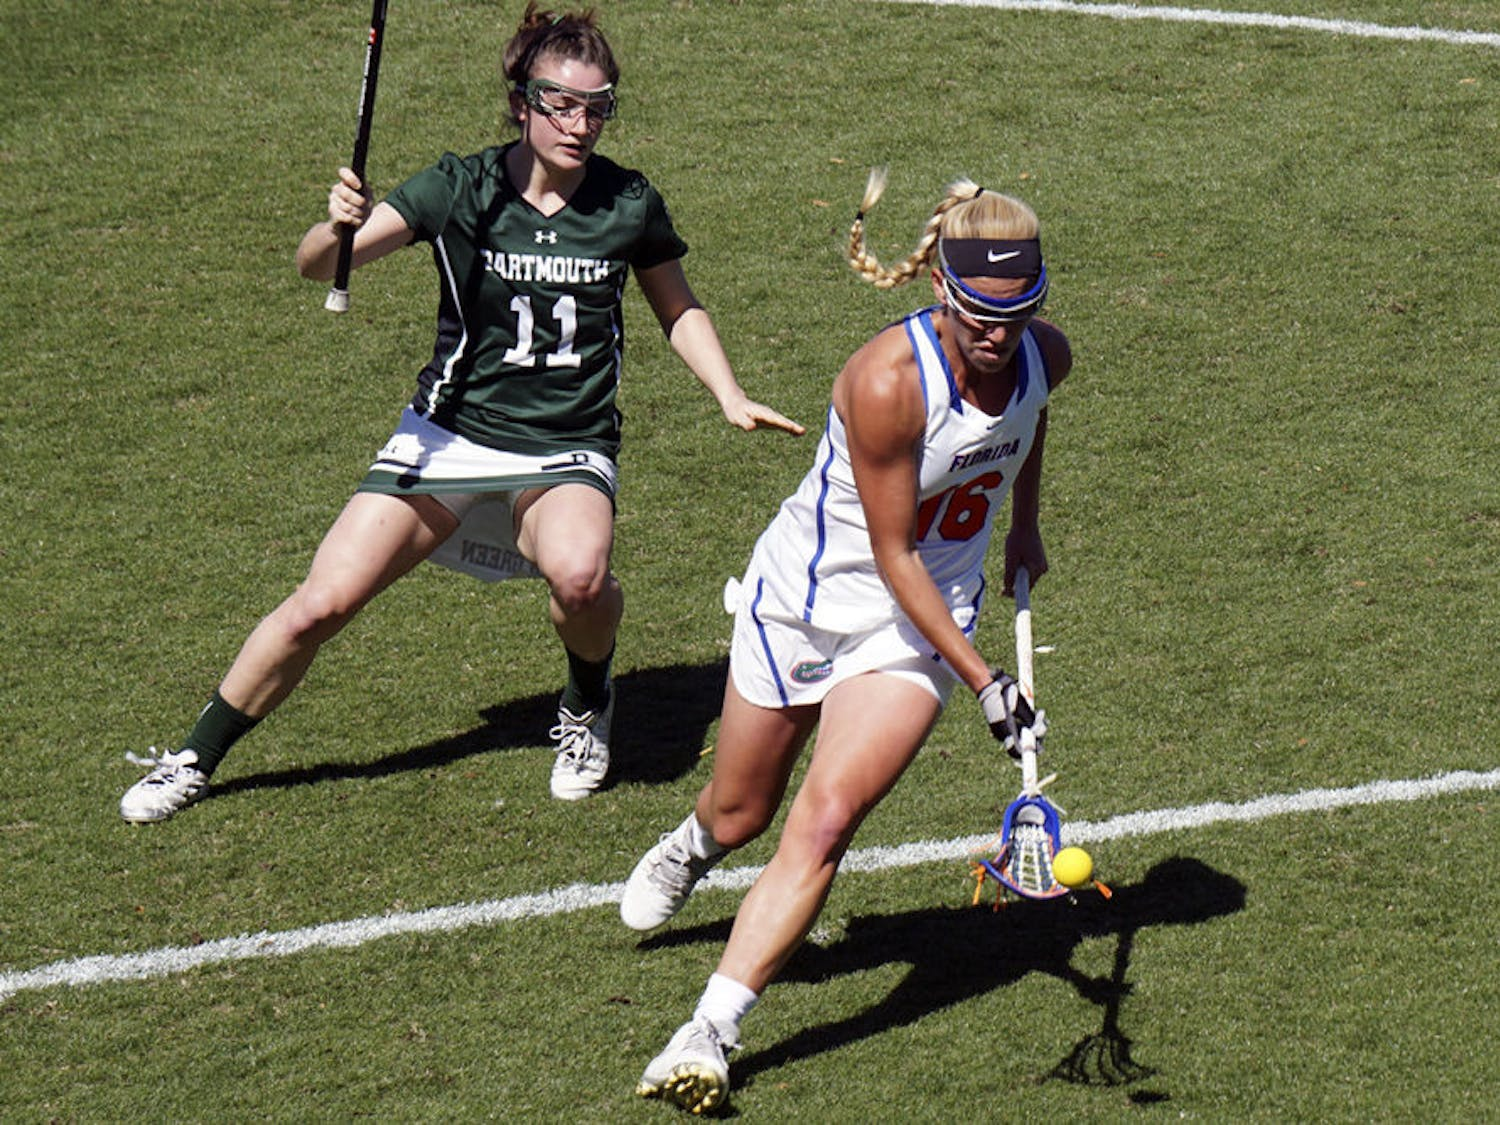 UF's Nicole Graziano (right) makes a play on the ball during Florida's 16-6 win over Dartmouth on Feb. 27, 2016.